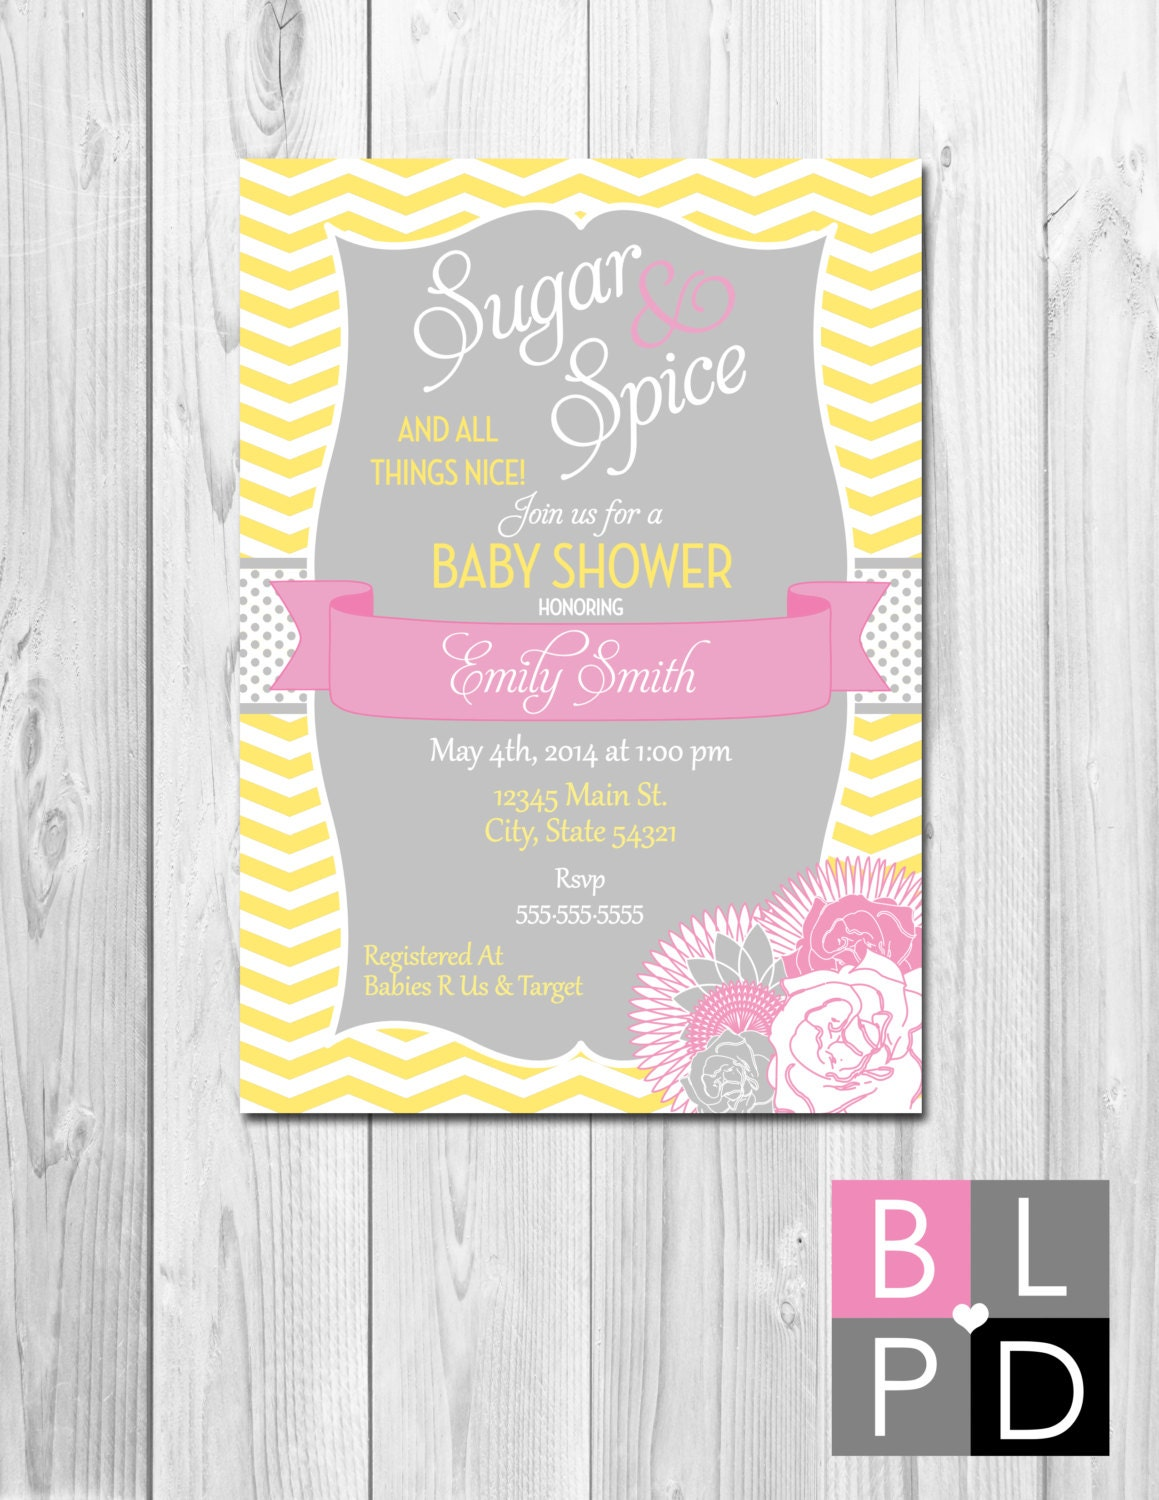 sugar spice baby shower invitation flowers chevron